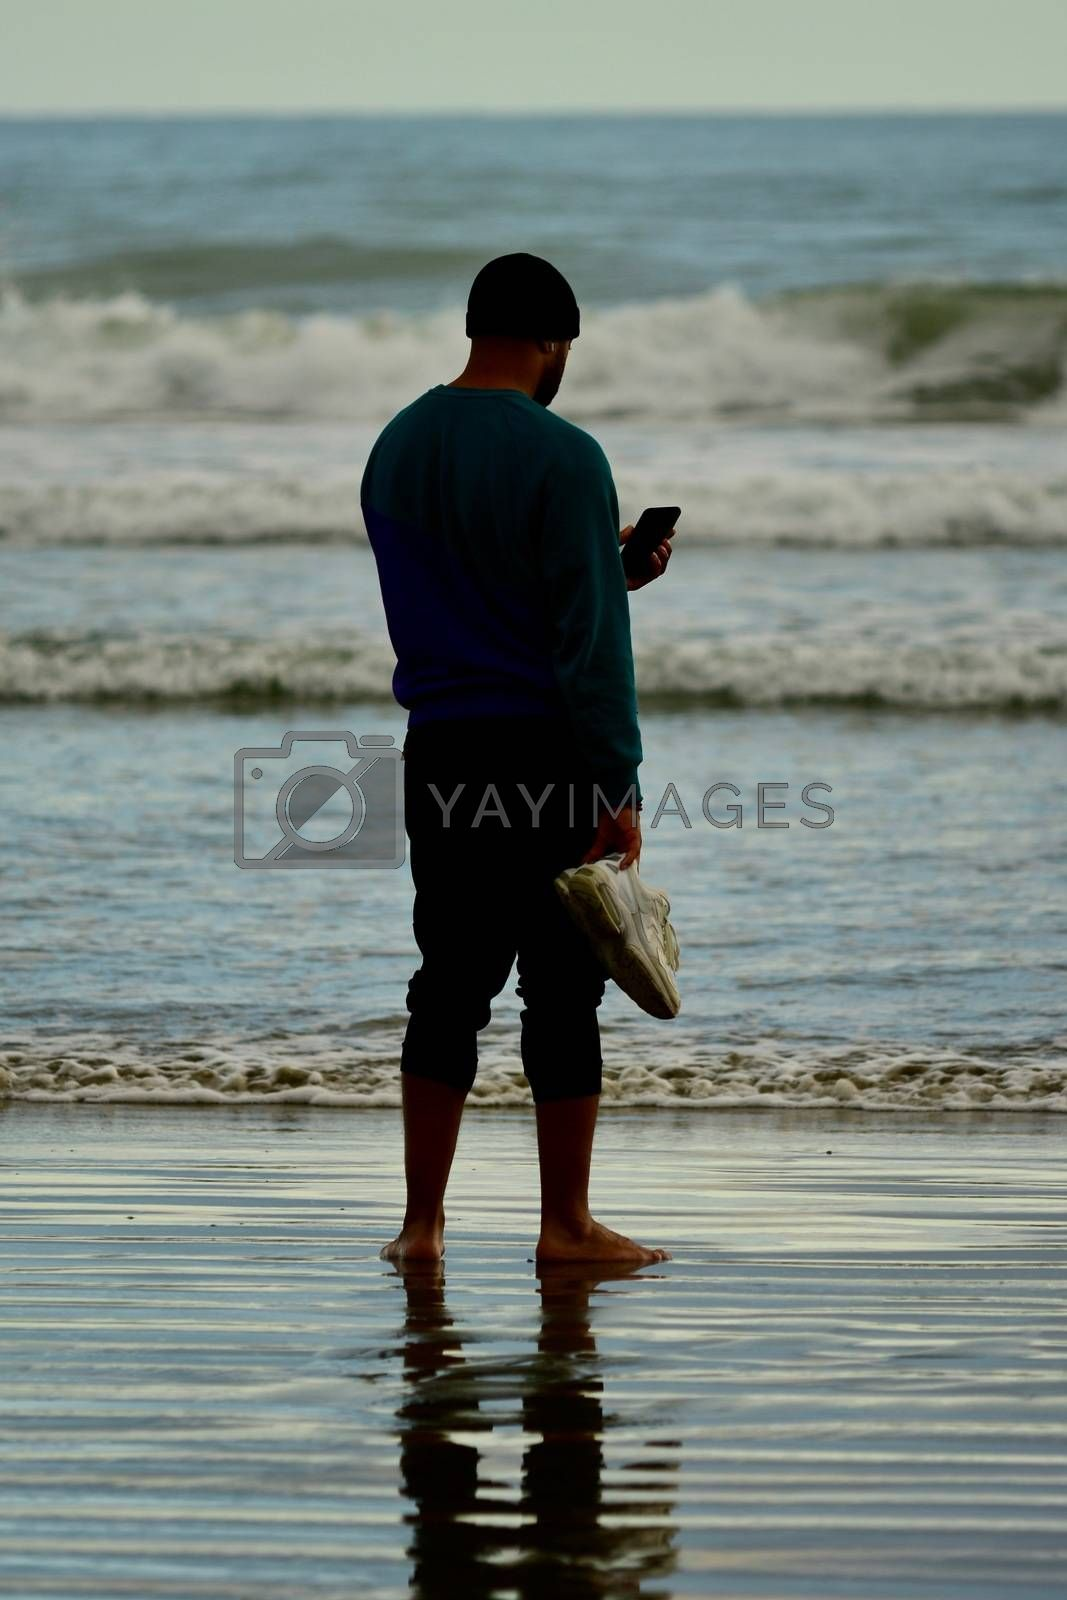 Leisure activities; walking on a beach; a man reading on his phone; taking a photo with a phone camera